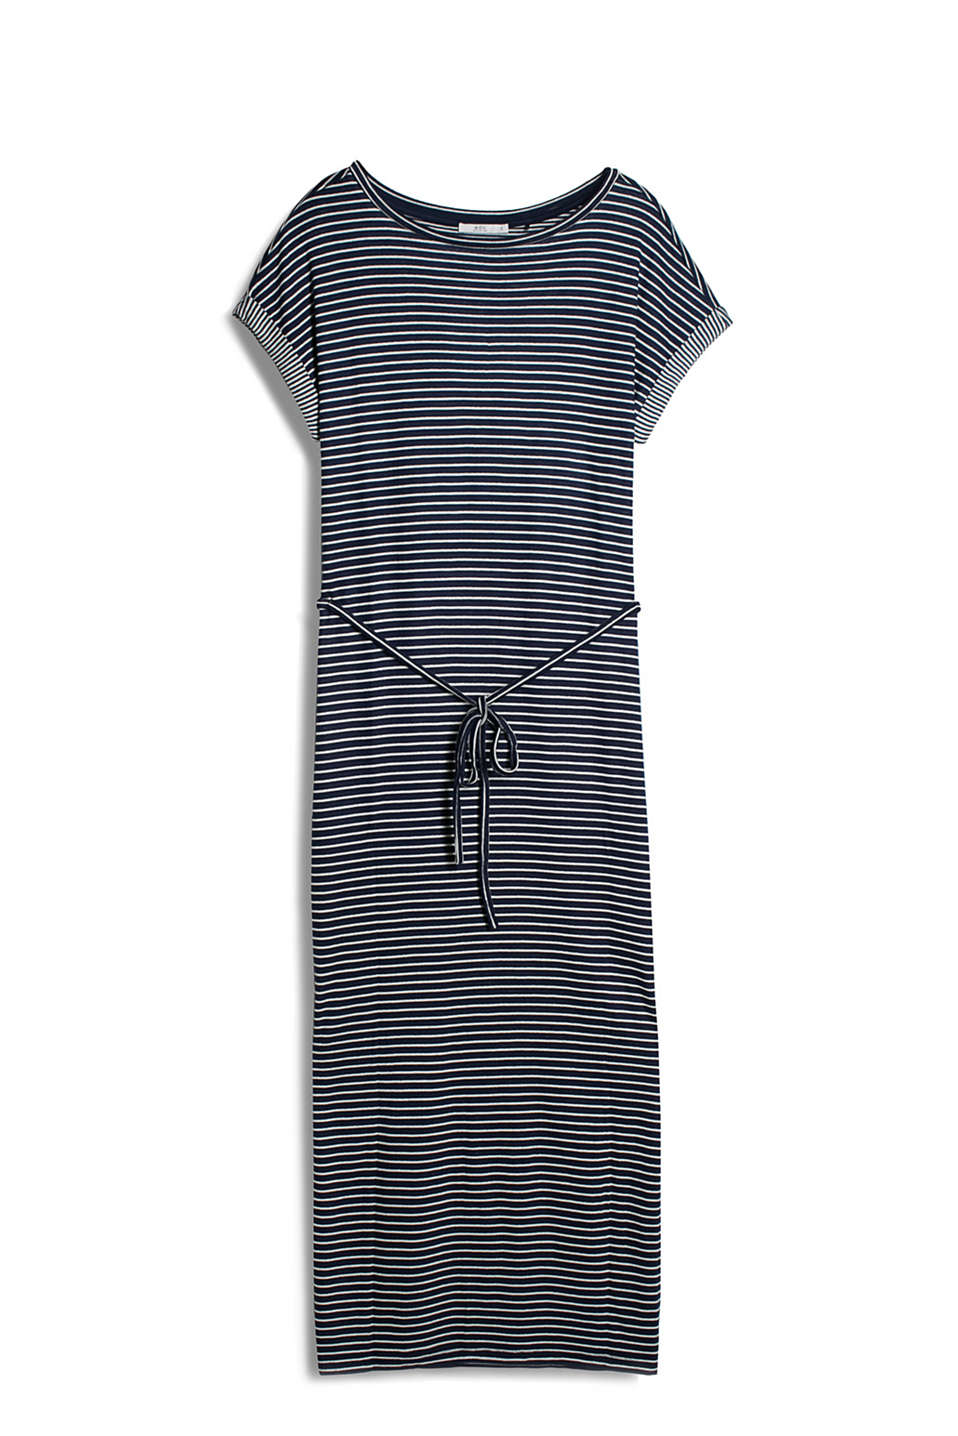 with all-over stripes, tie belt and high hem slits